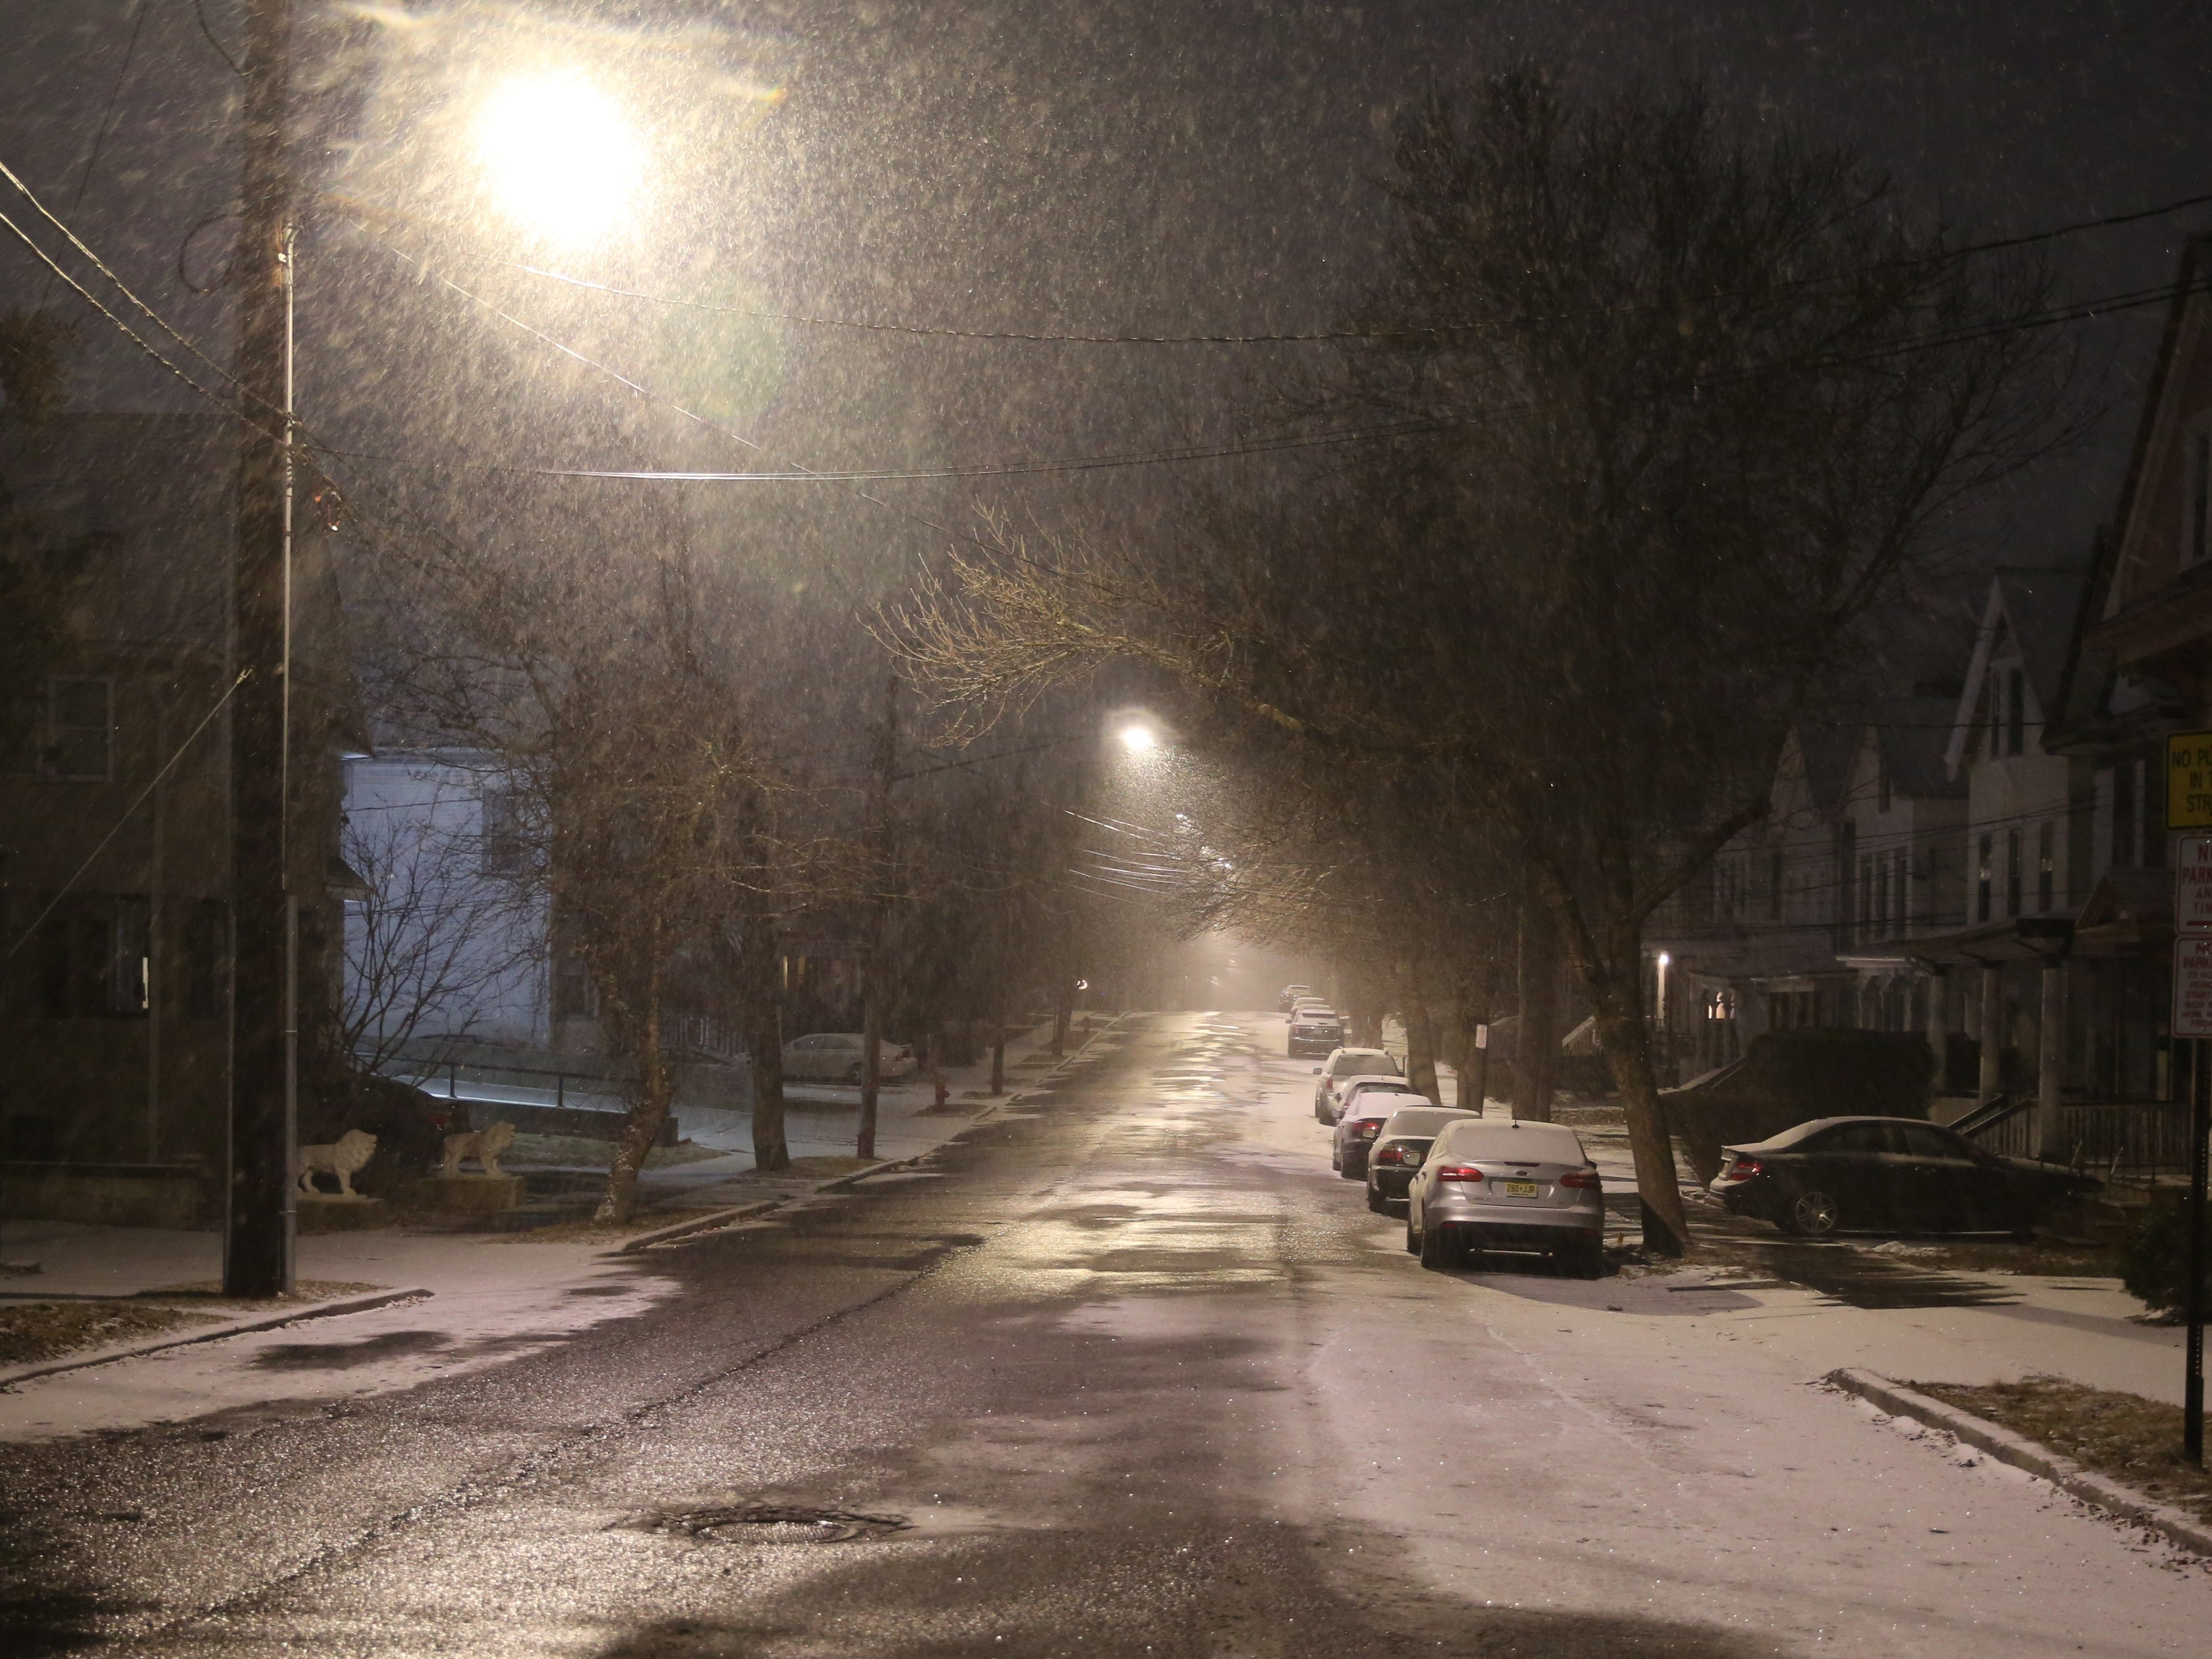 Snow falls on a street in the City of Poughkeepsie on Saturday night. The region is expected to get 4-8 inches of snow and possibly ice Saturday into Sunday.